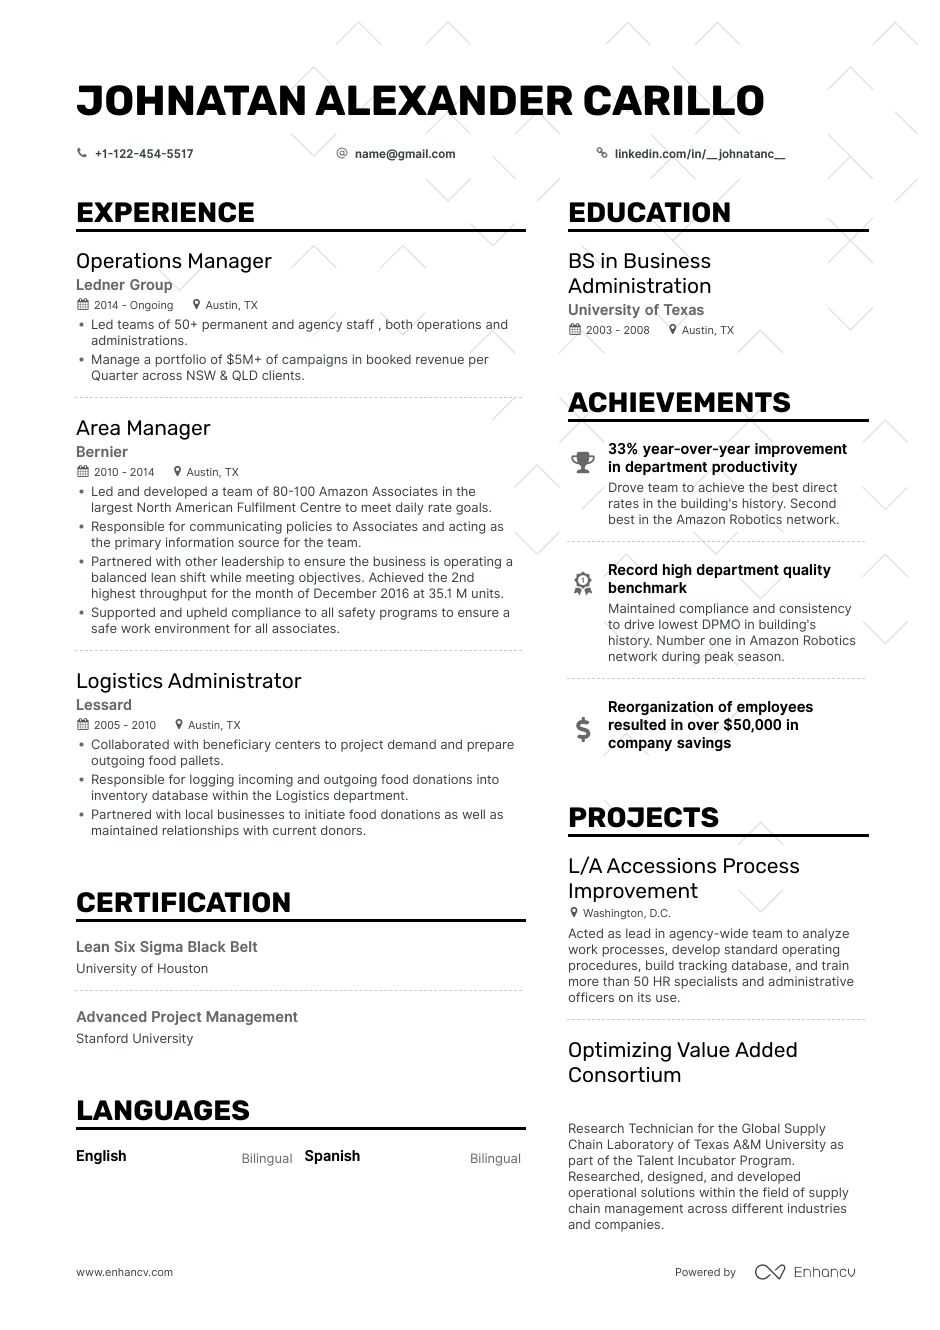 operations manager resume step ultimate guide for examples generated starbucks experience Resume Operations Manager Resume Examples